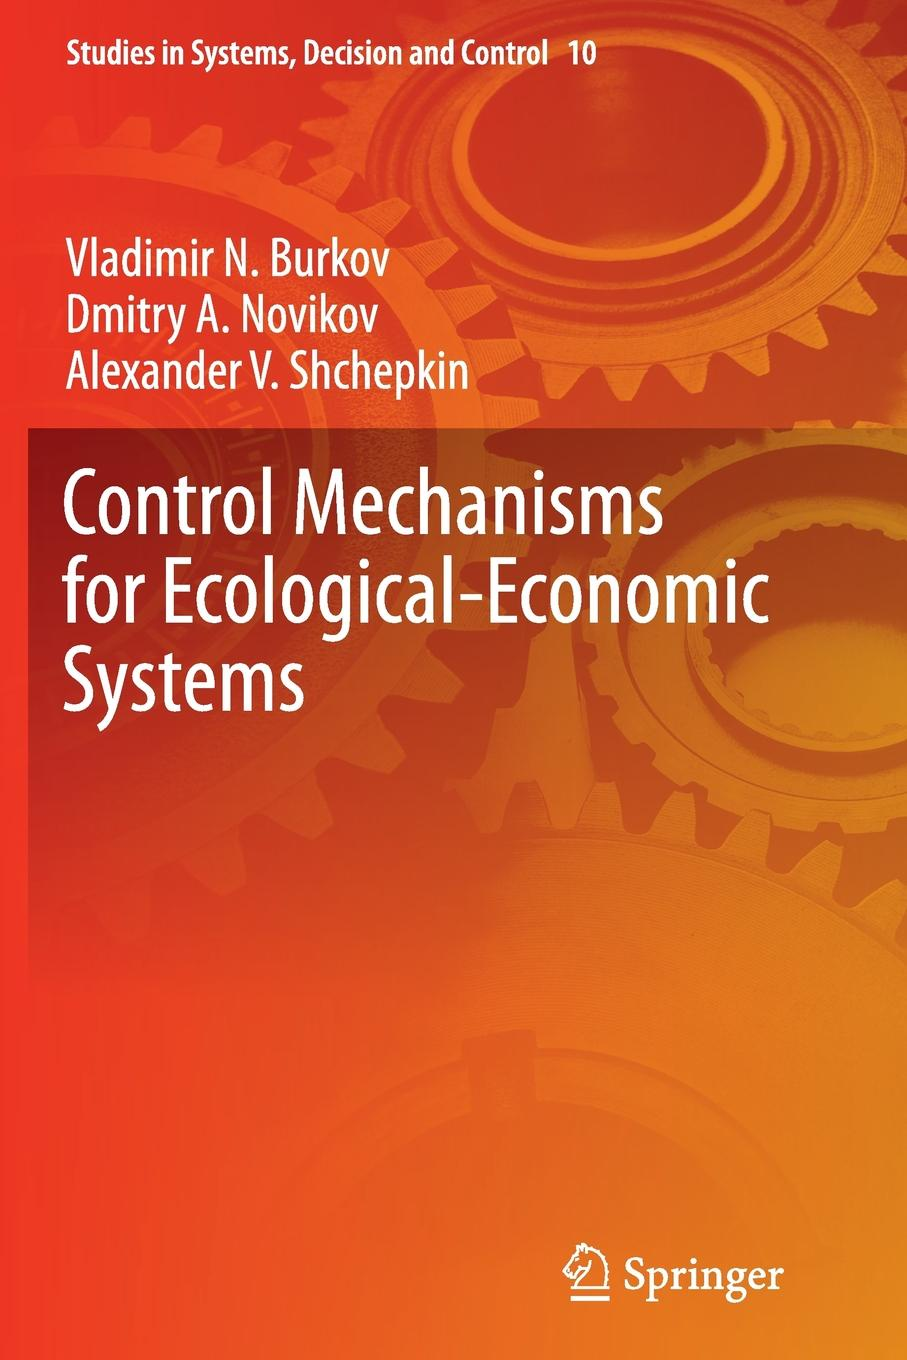 Vladimir N. Burkov, Dmitry A. Novikov, Alexander V. Shchepkin Control Mechanisms for Ecological-Economic Systems being ecological